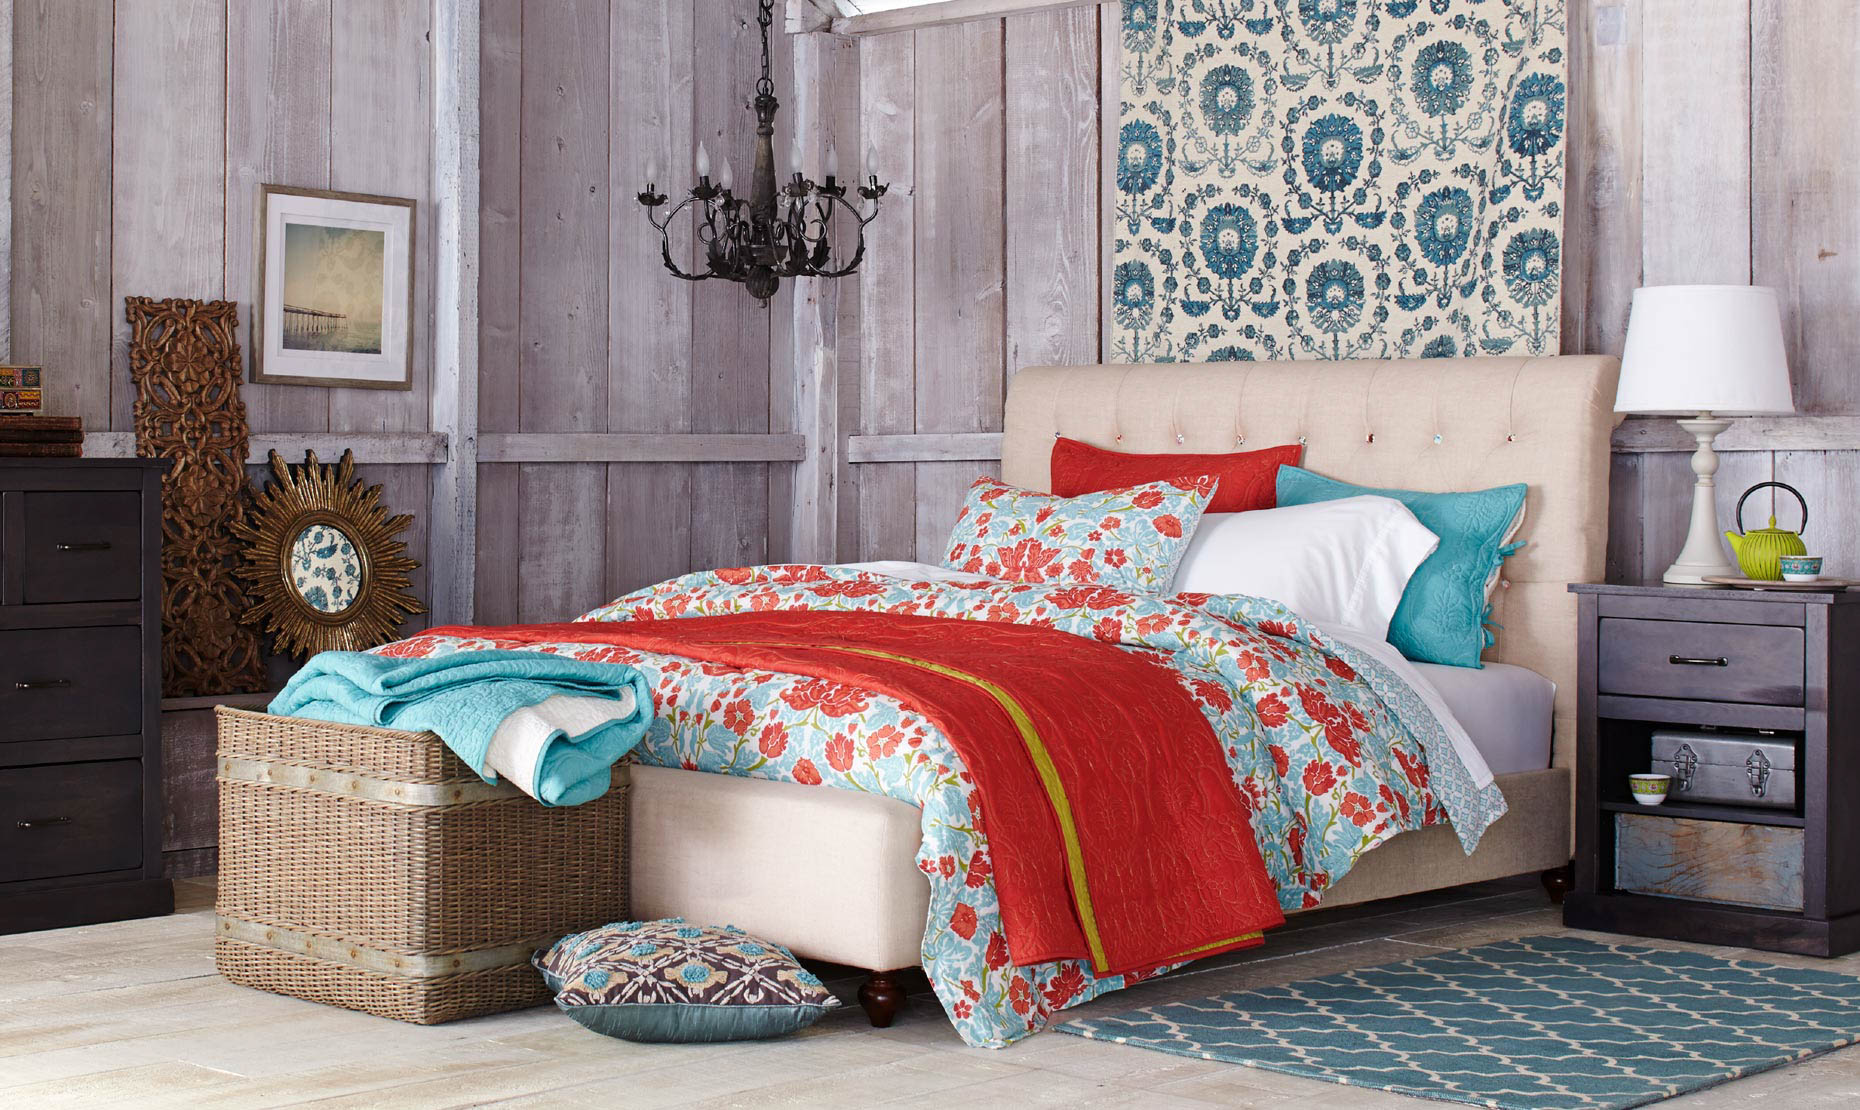 bedroom with red and blue floral print bedspread and blue rug and painting San Francisco interior photographer